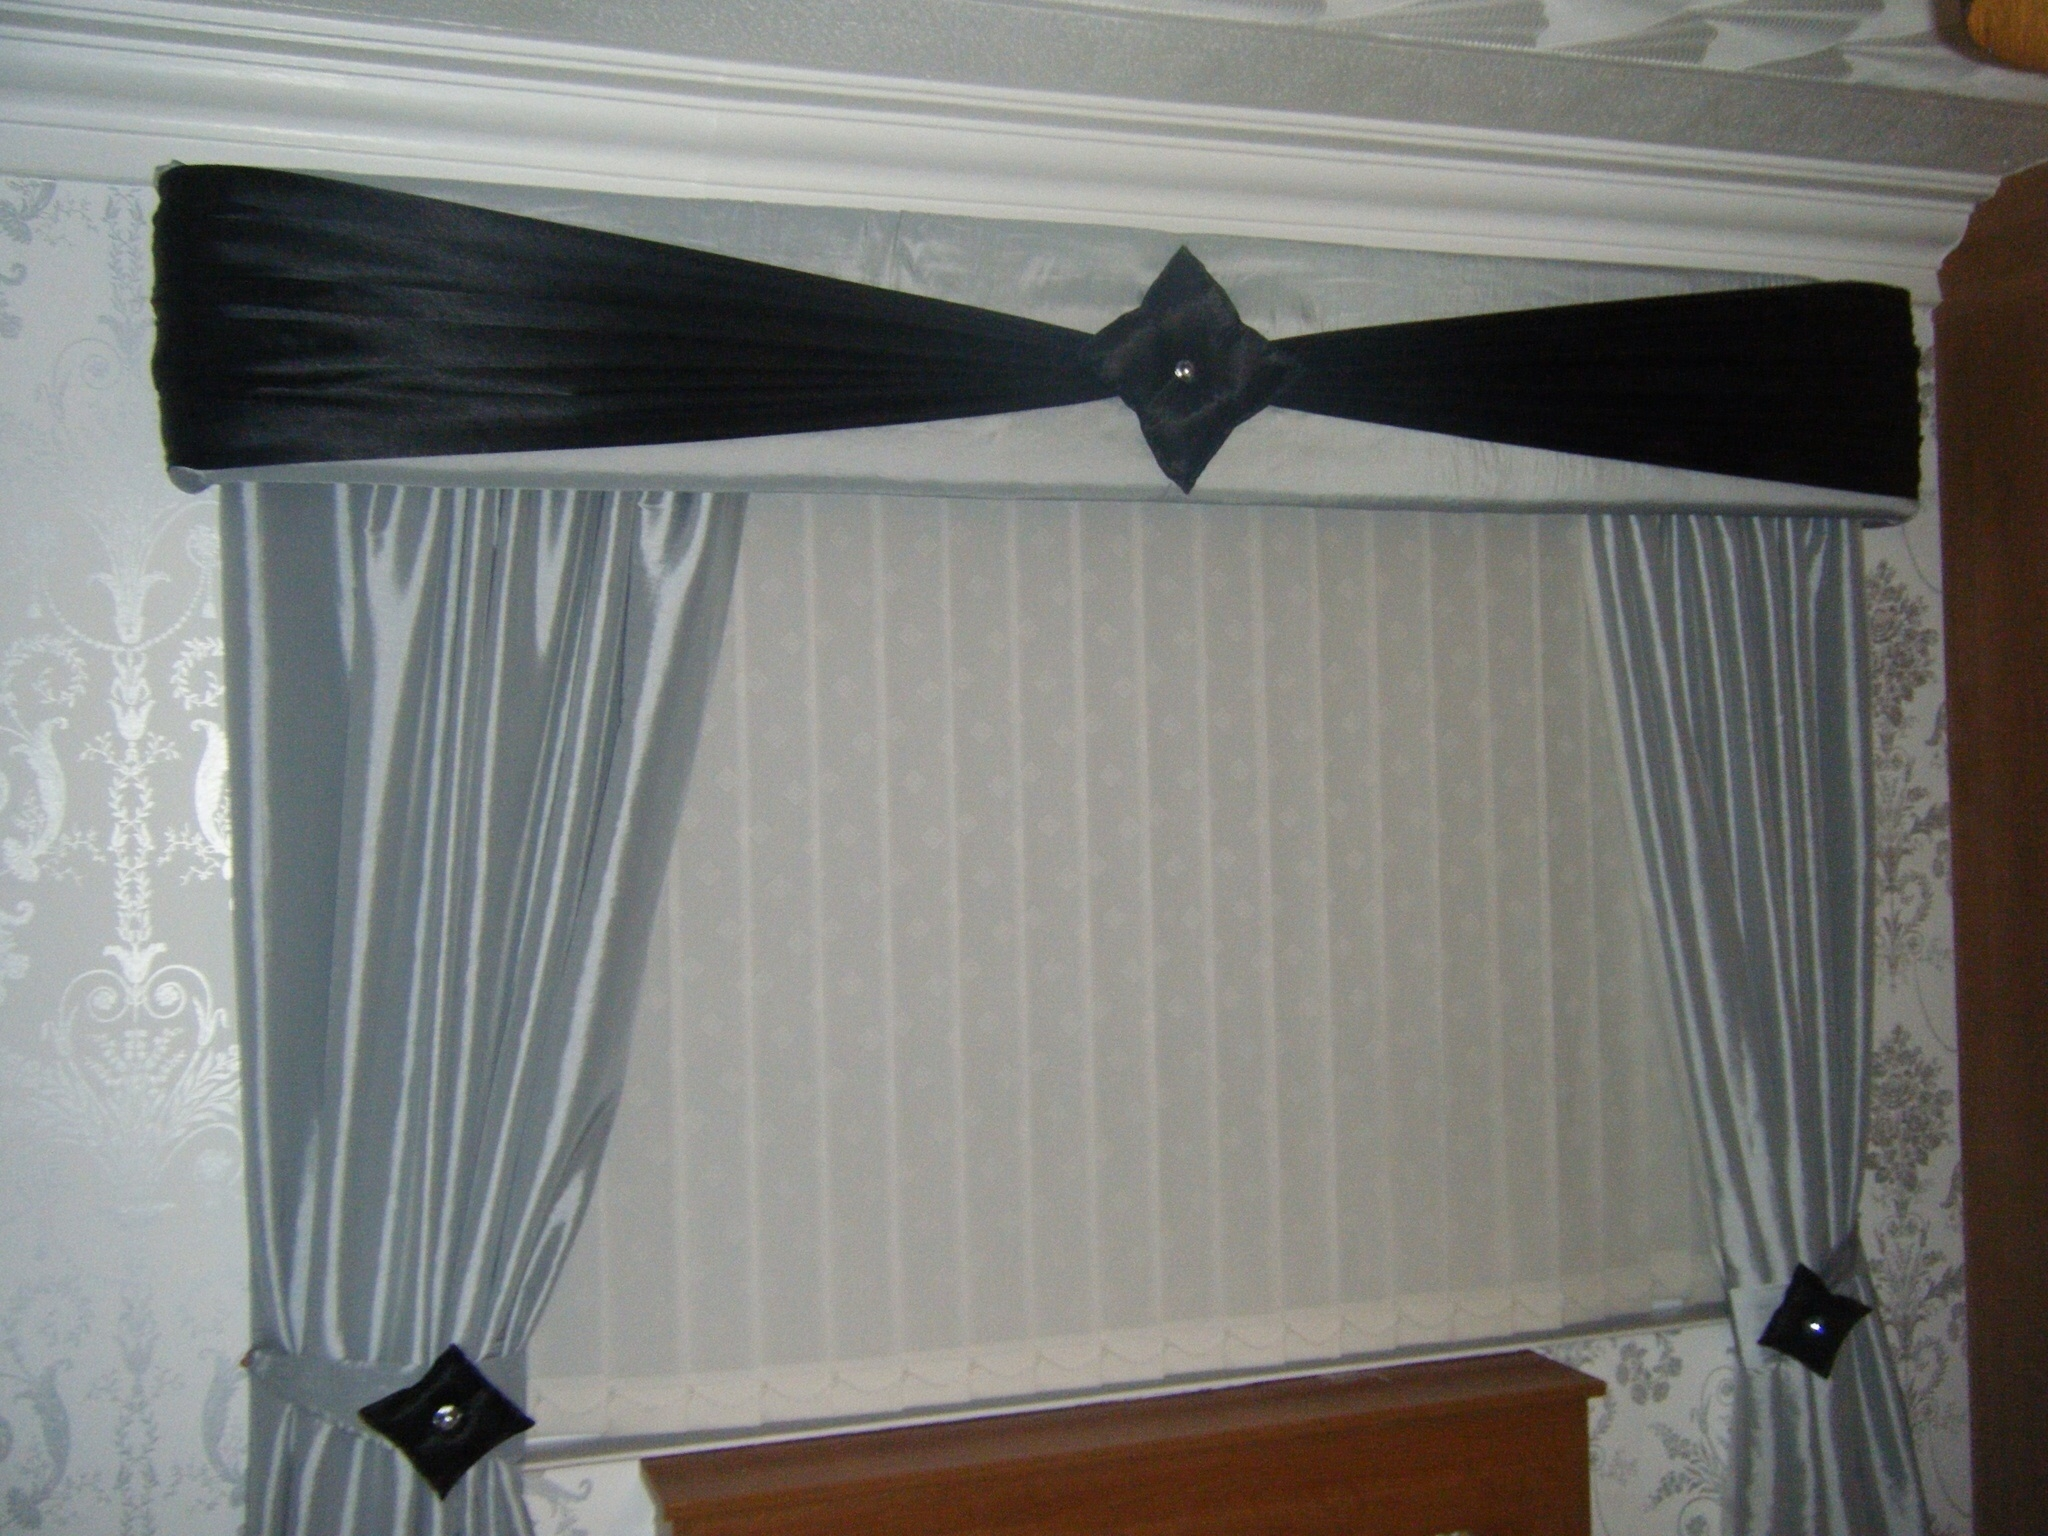 Beautiful Handmade Curtains Pelmets Tie Backs My Curtains With Hand Made Curtains (Image 4 of 15)